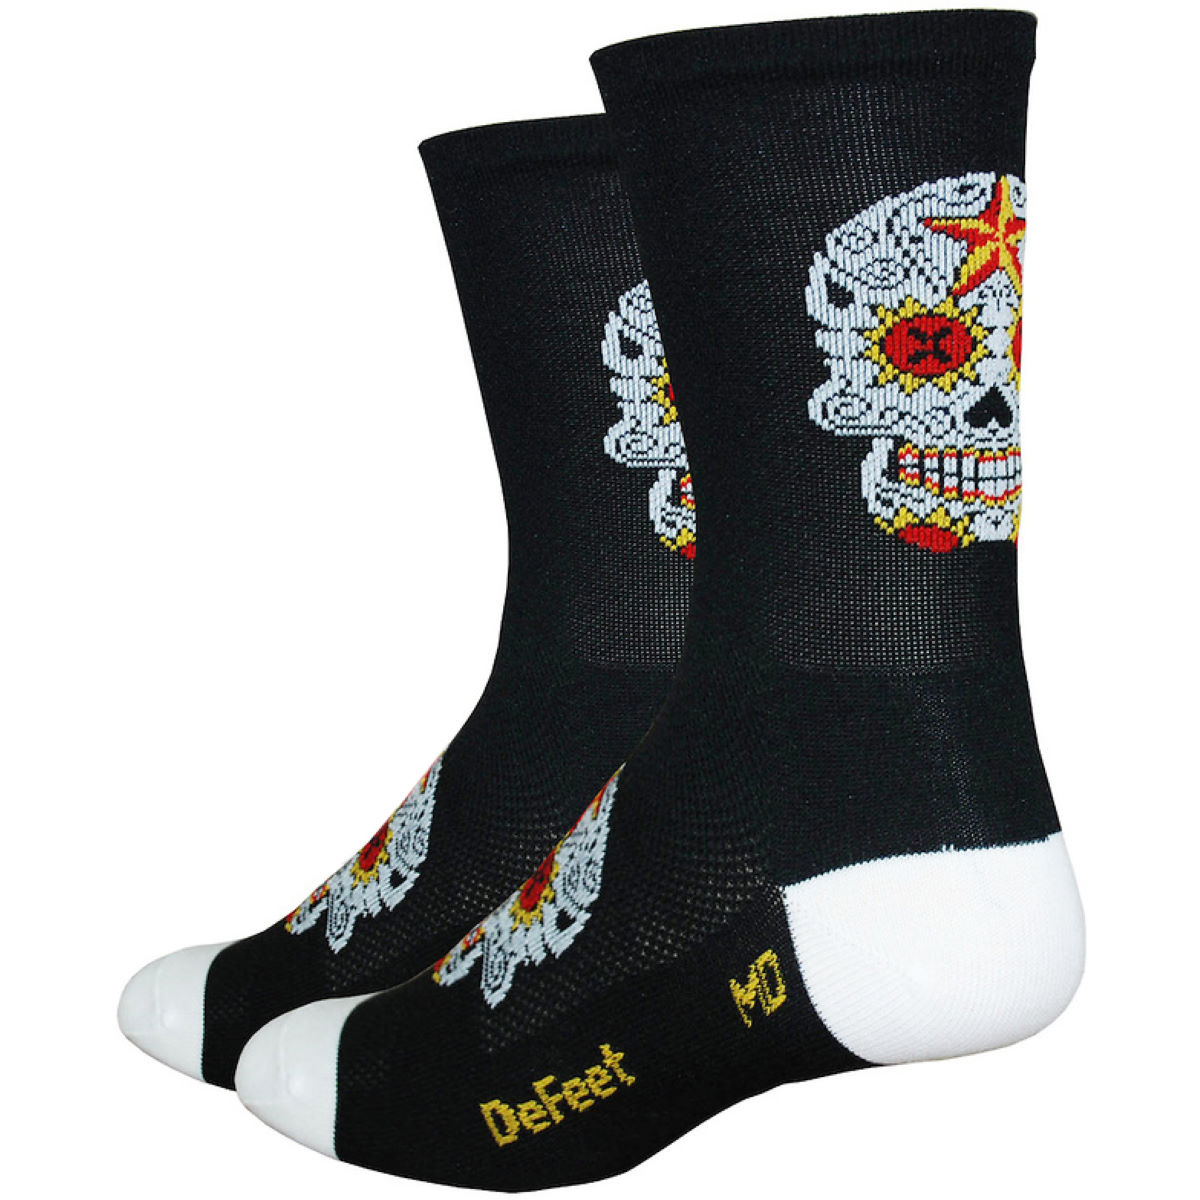 DeFeet DeFeet Aireator Tall Sugarskull Socks   Socks